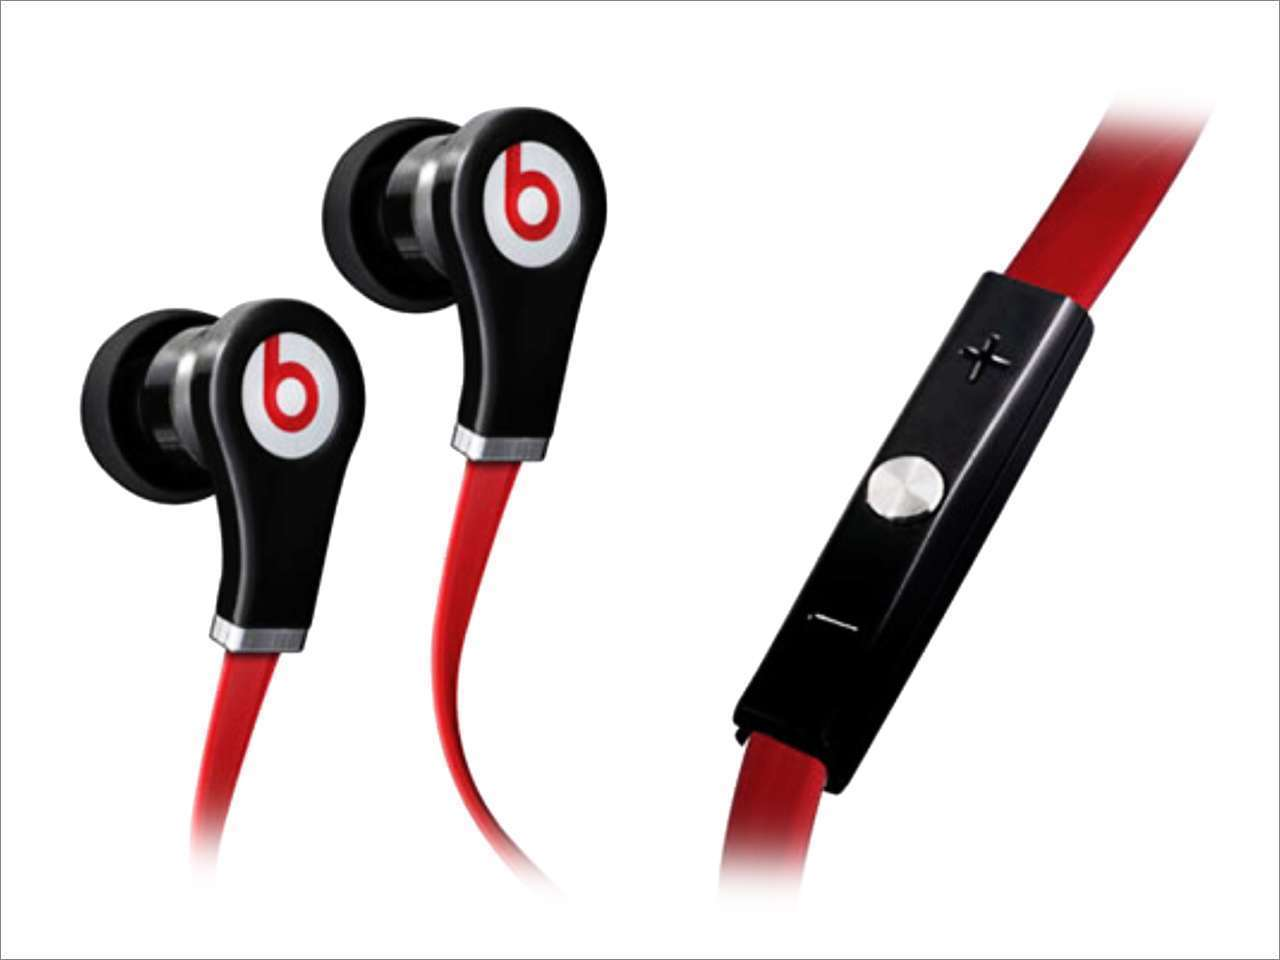 Beats By Dre - Beats by Dr. Dre Tour In-Ear Earbuds Headphones with Remote & Mic - Black / Red